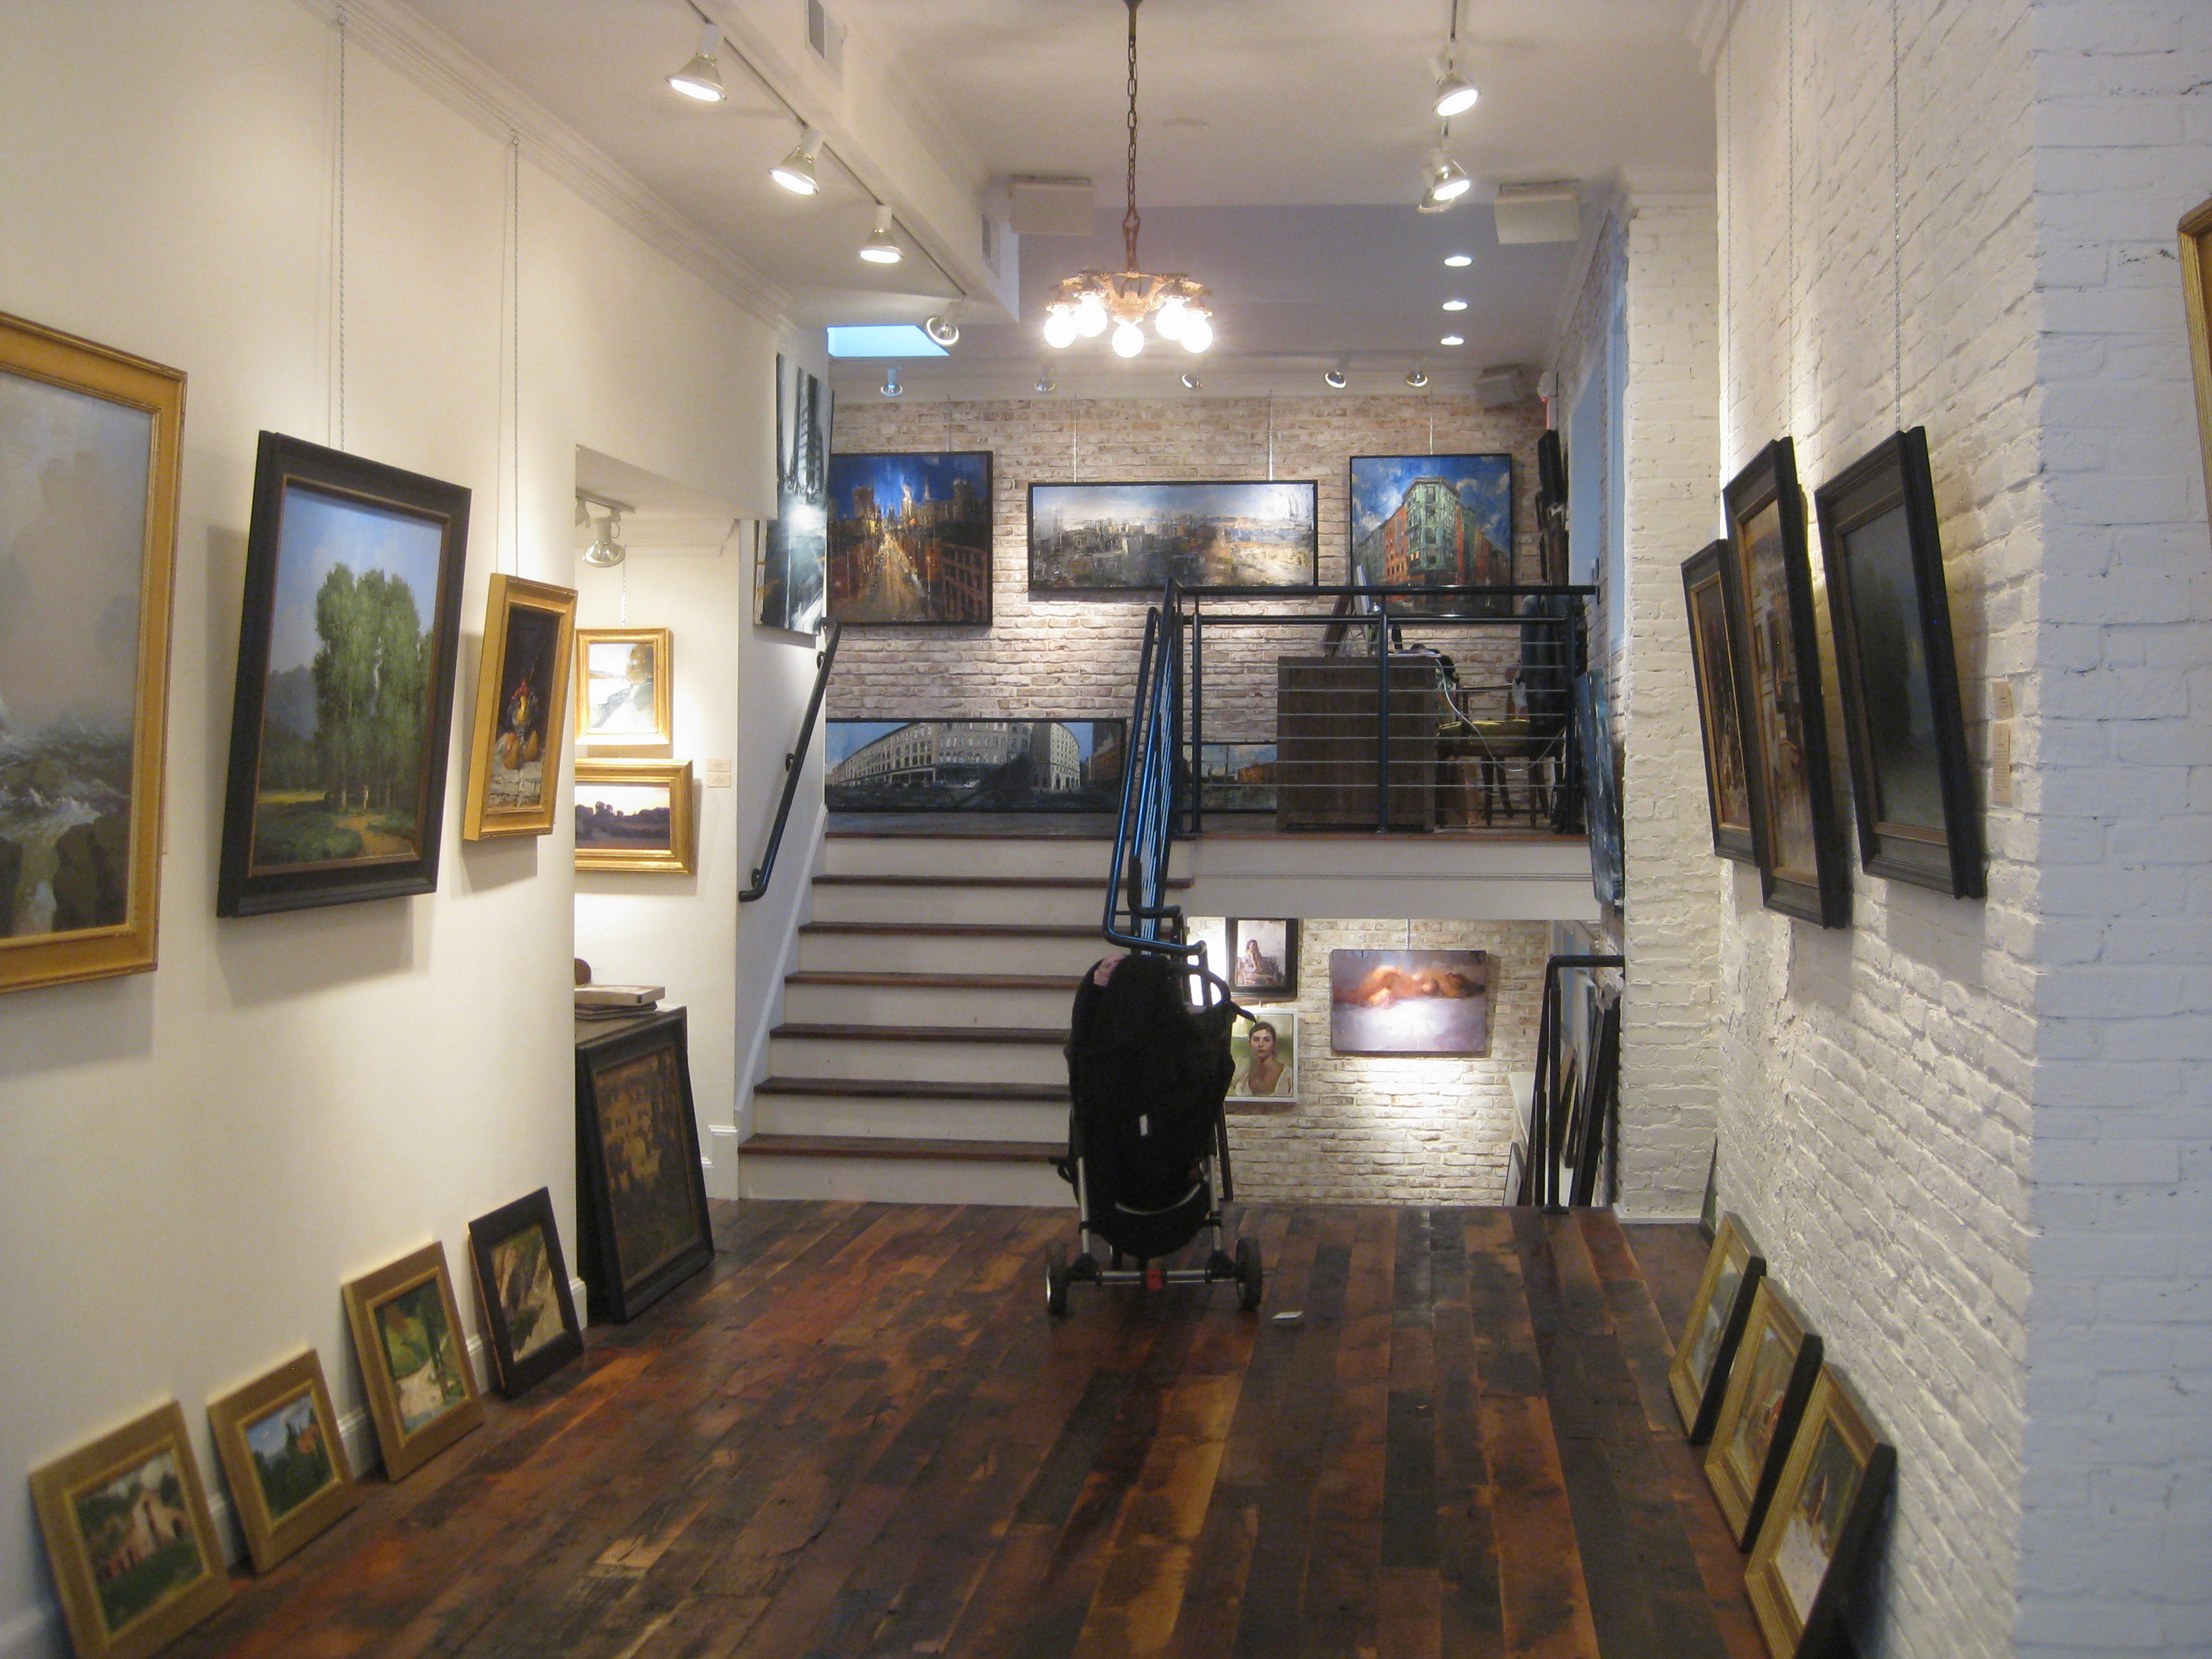 New artist at the Sloane Merrill Gallery!